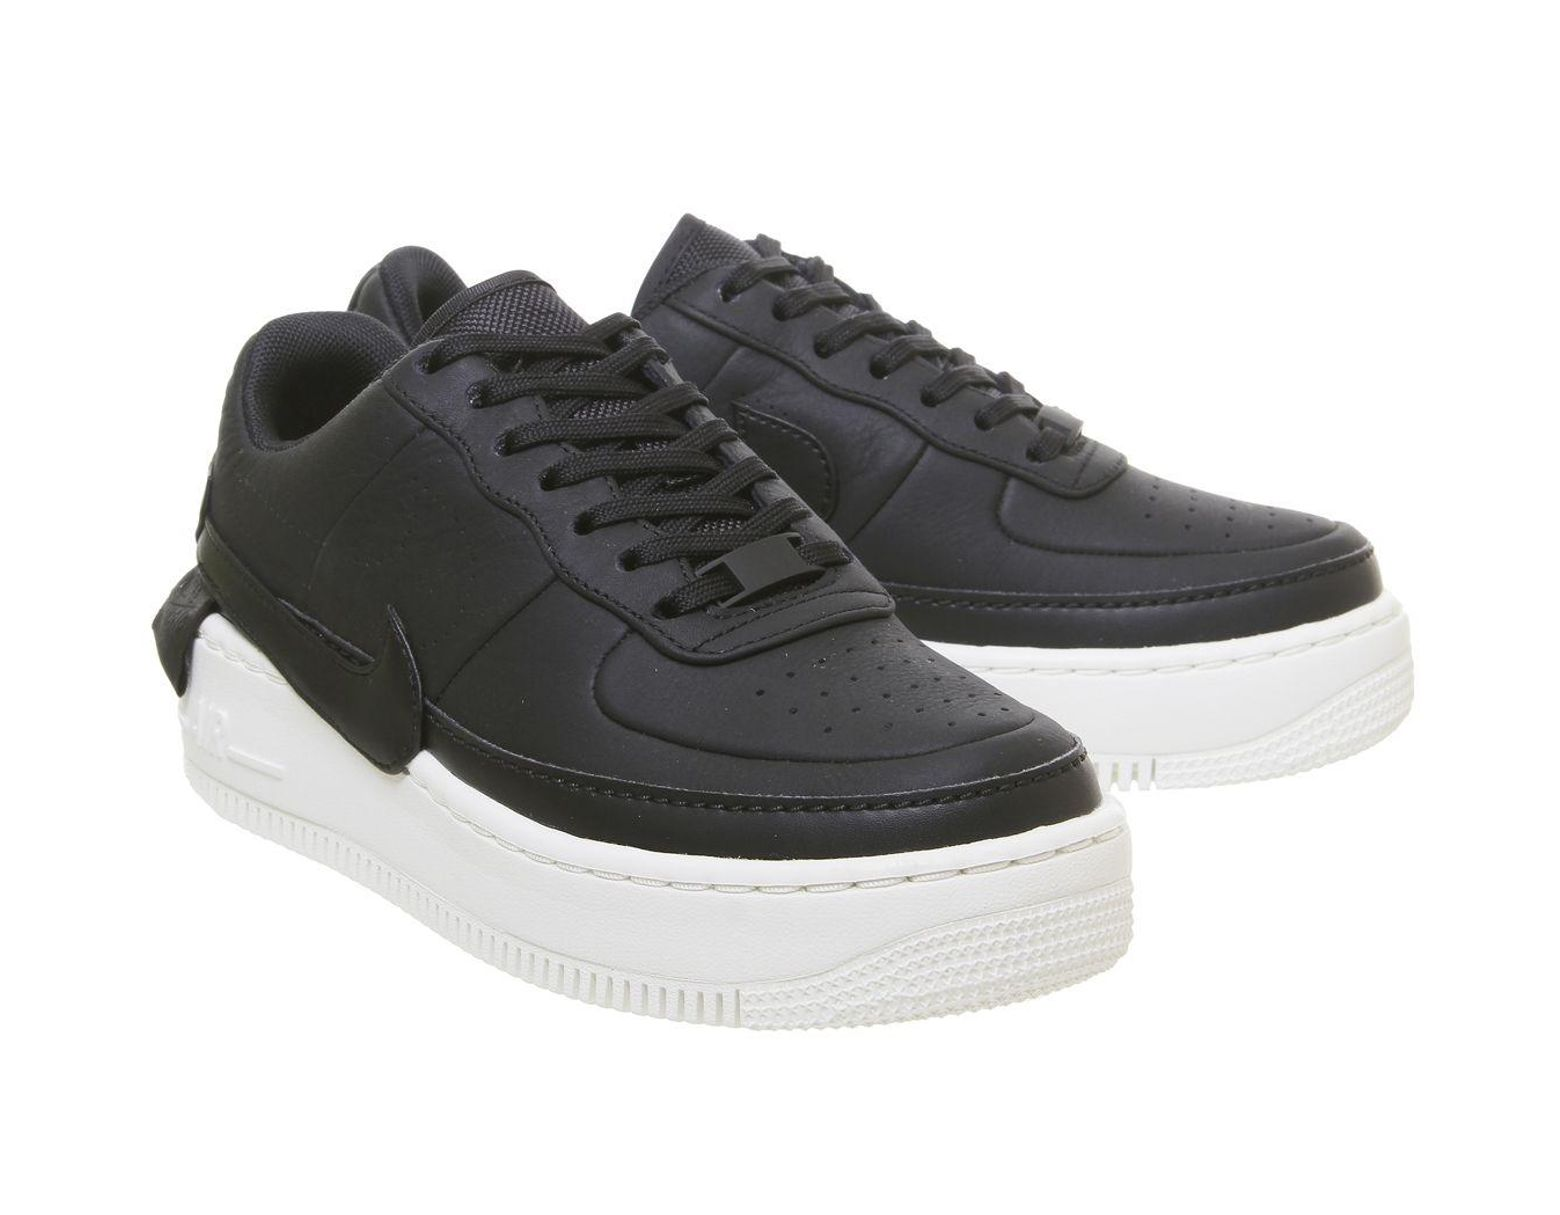 nike white & black air force 1 jester xx trainers